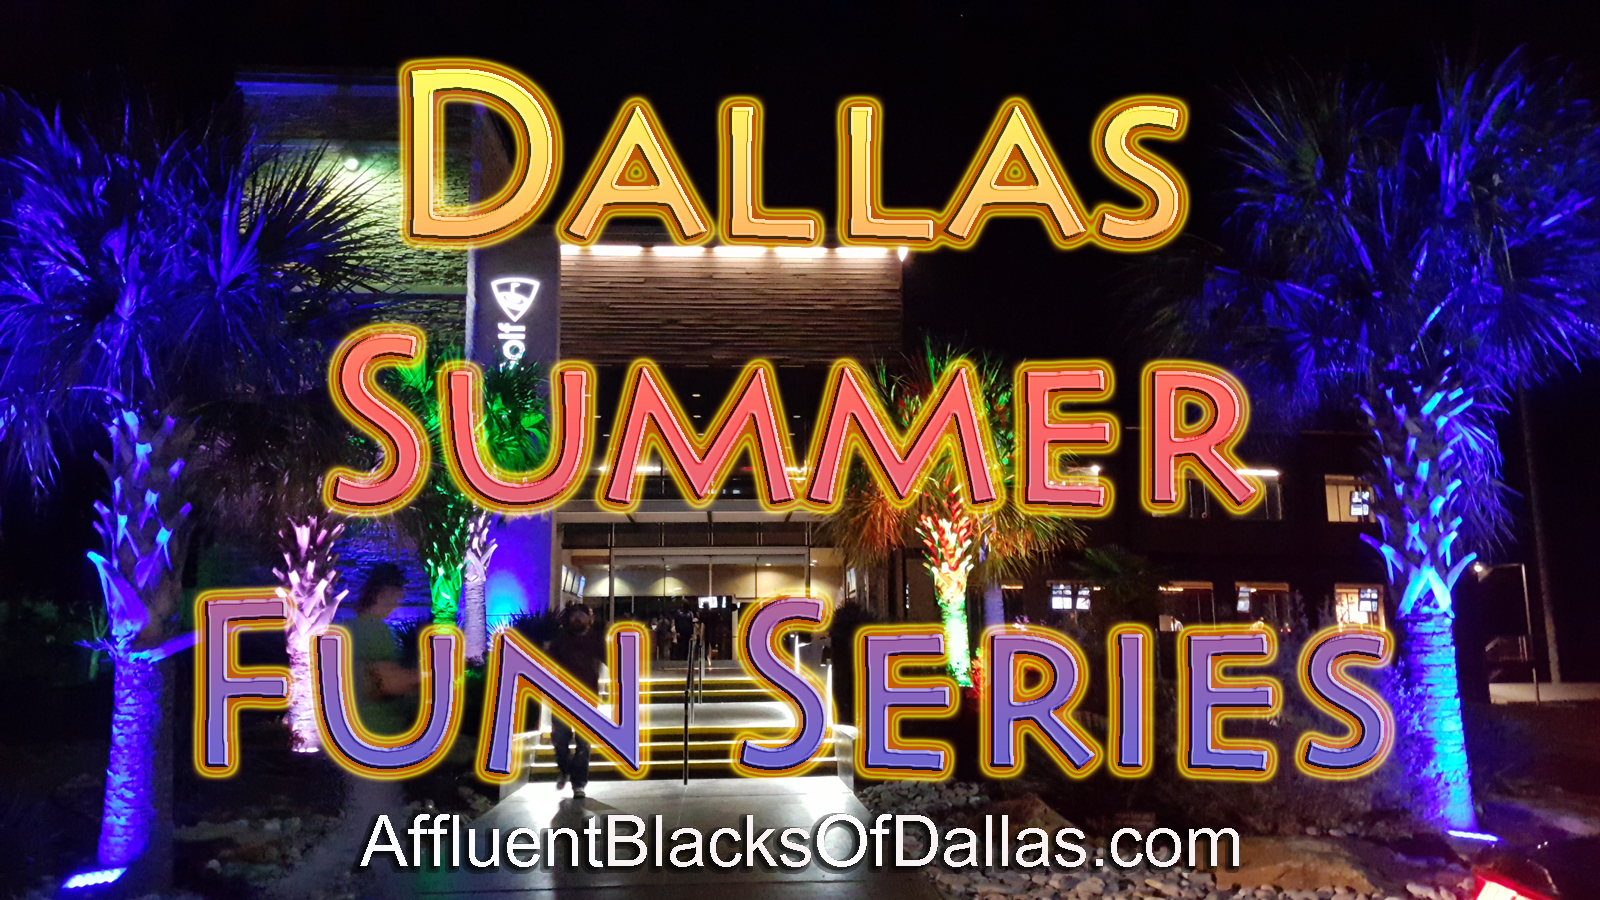 4th of July Special: 6th Weekend of the Dallas Summer Fun Series!